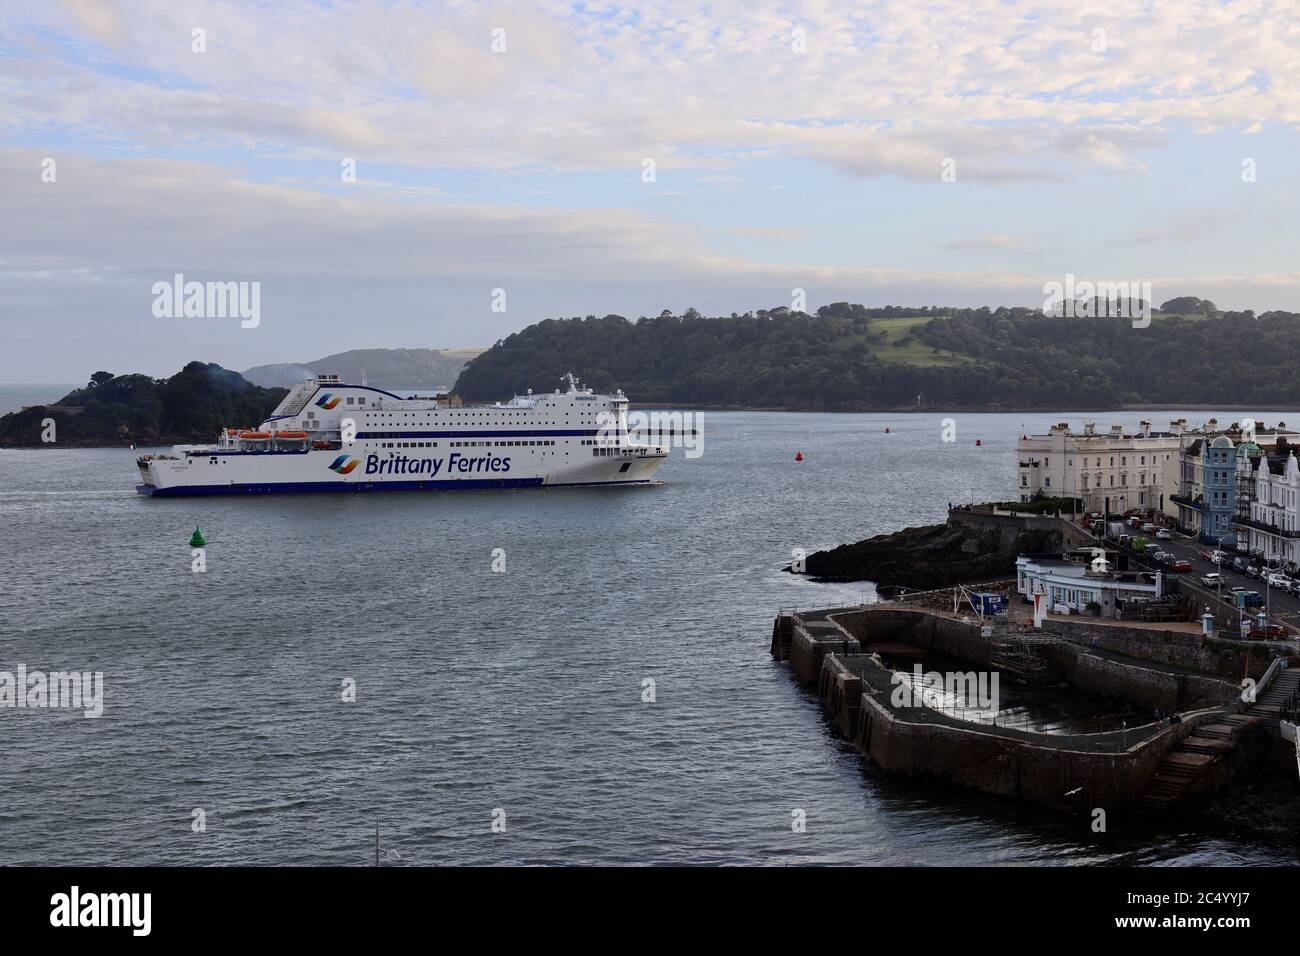 """Plymouth, UK. 29th July, 2020. Brittany Ferries """"Armorique"""" returns to Plymouth for the first time since March, when sailings were cancelled due to Coronavirus. The ship is scheduled to make its first return sailing from Plymouth to Roscoff, France, at 22:00 tonight. Credit: Julian Kemp/Alamy Live News Stock Photo"""